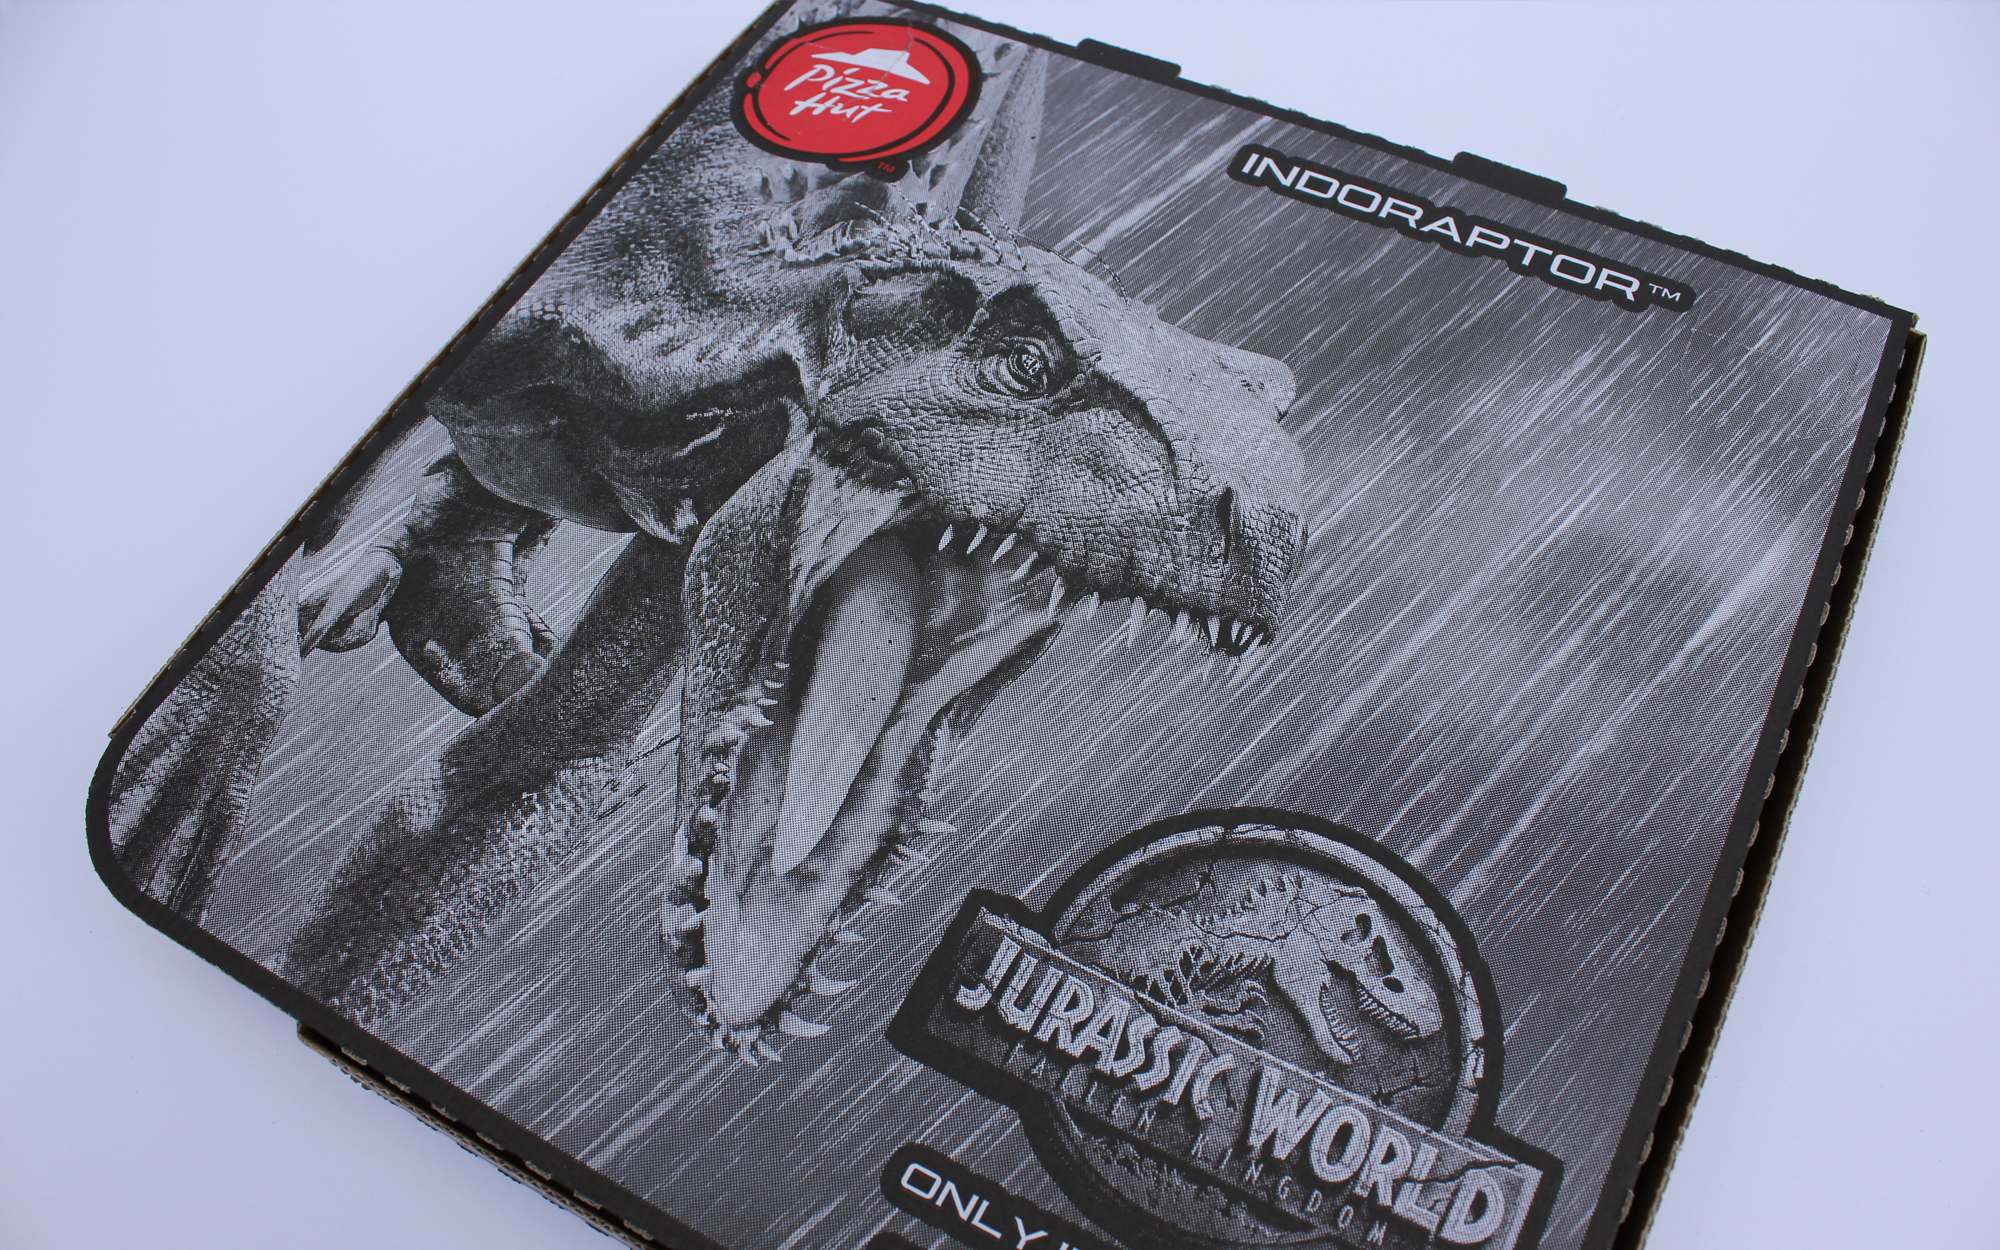 matthew_pomorski_graphic_designer_pizza_box_artwork_pizza_hut_jurassic_world_fallen_kingdom_promotion_indoraptor